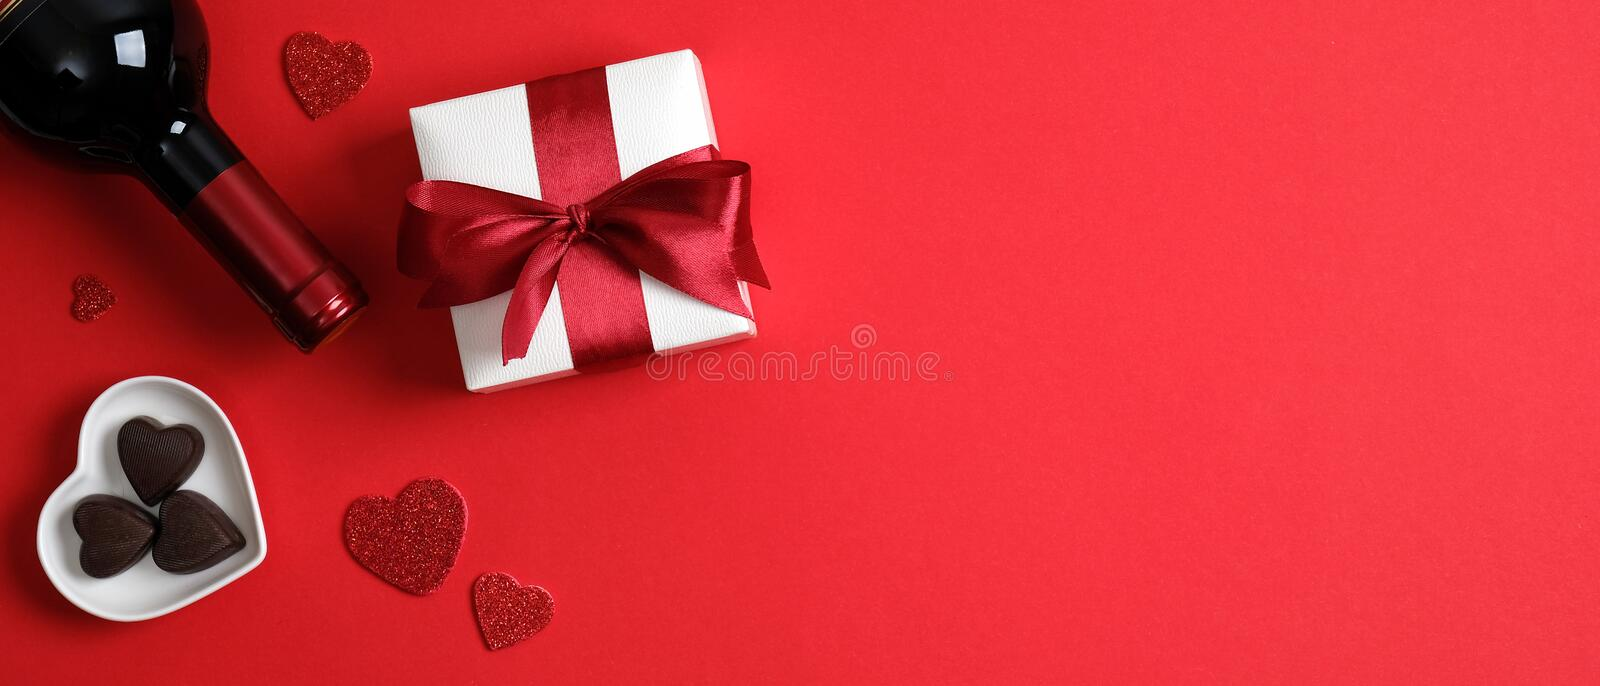 Valentine`s day banner template with wine bottle, valentine gift, heart shaped candies on red background with copy space. Top vie royalty free stock images